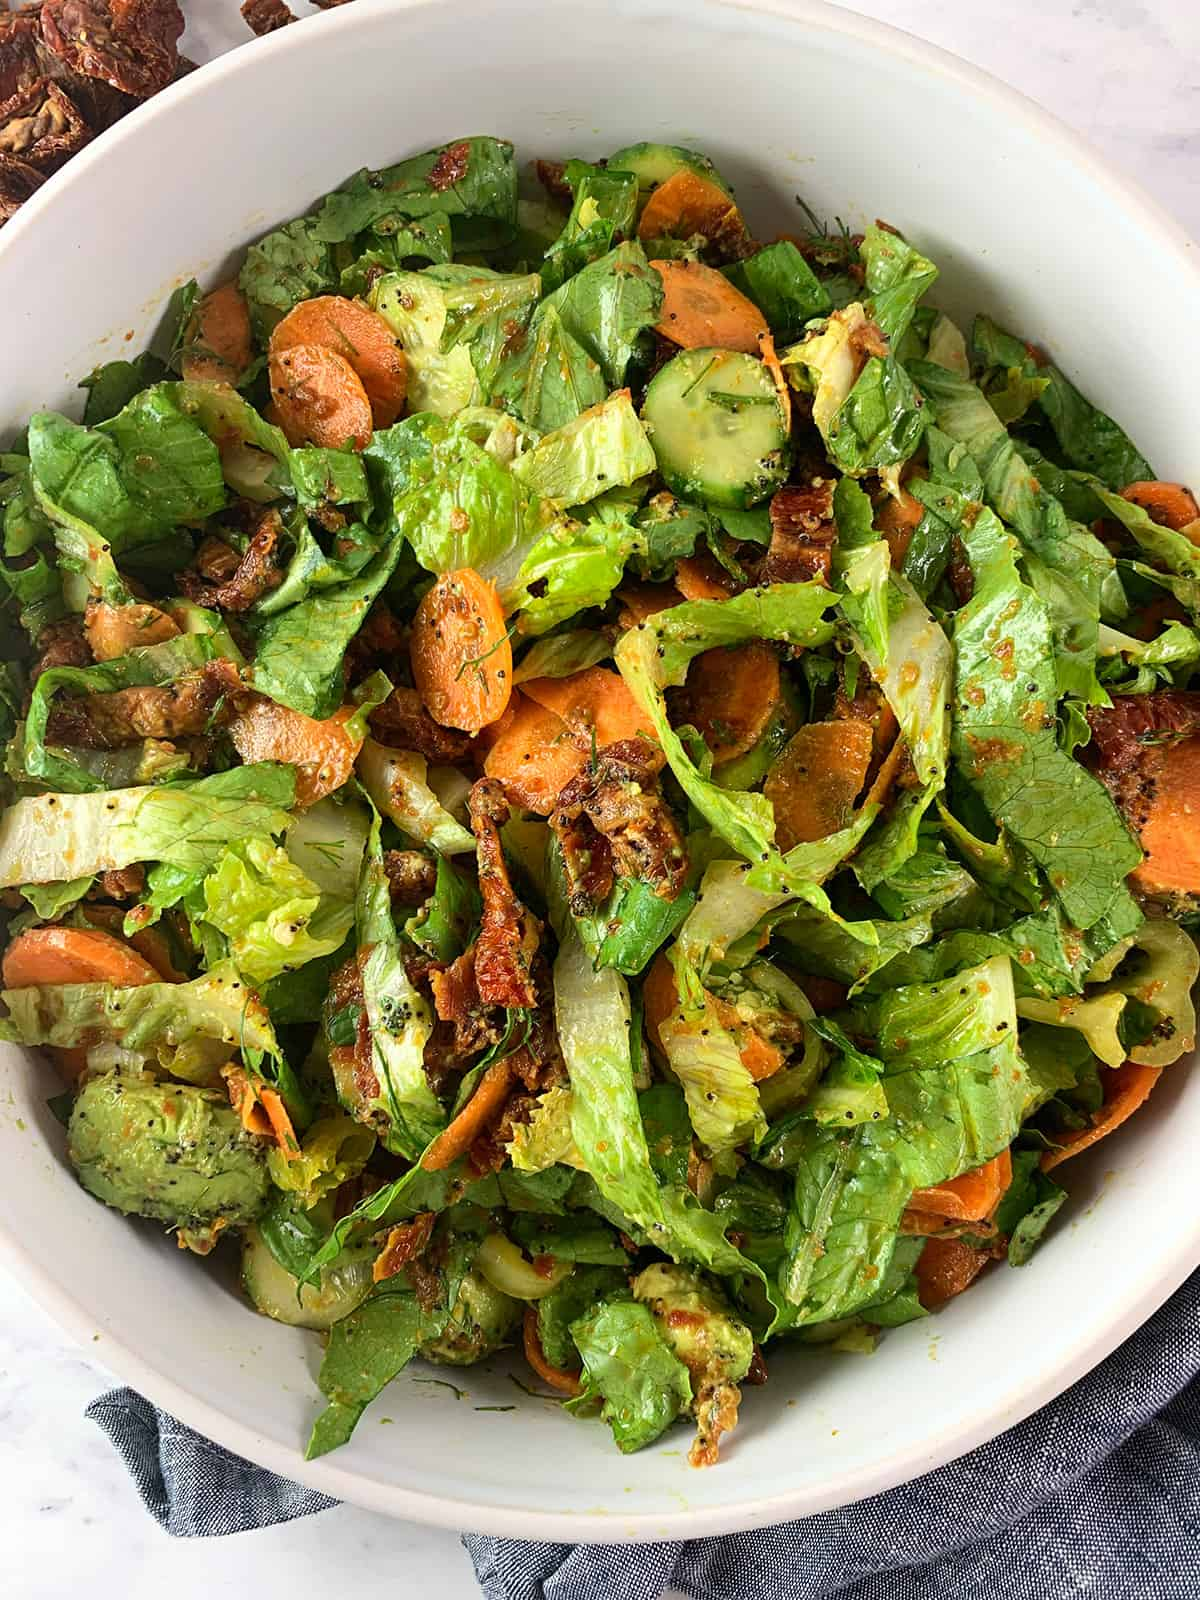 CLOSE-UP OF DRIED TOMATOES SALAD IN PORTRAIT